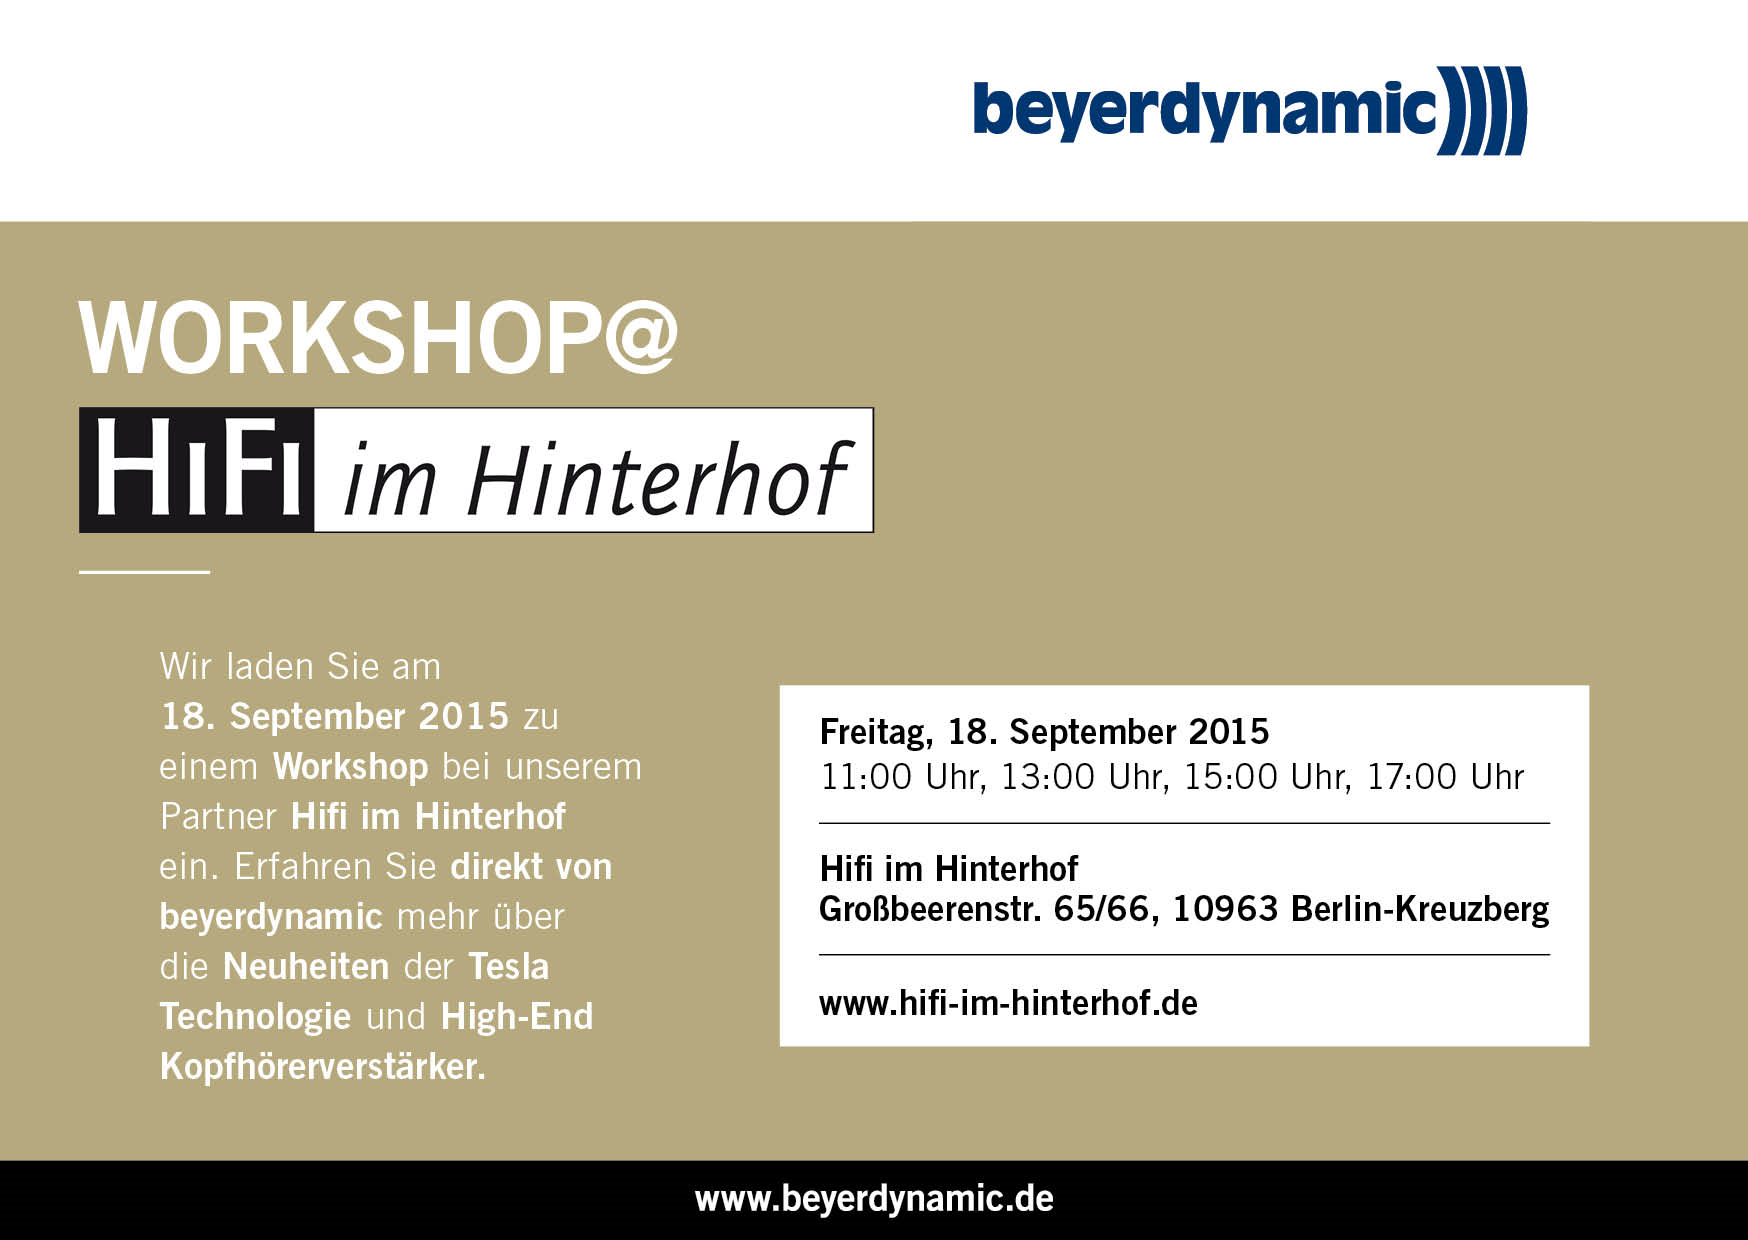 beyerdynamic-workshop-hifi-im-hinterhof